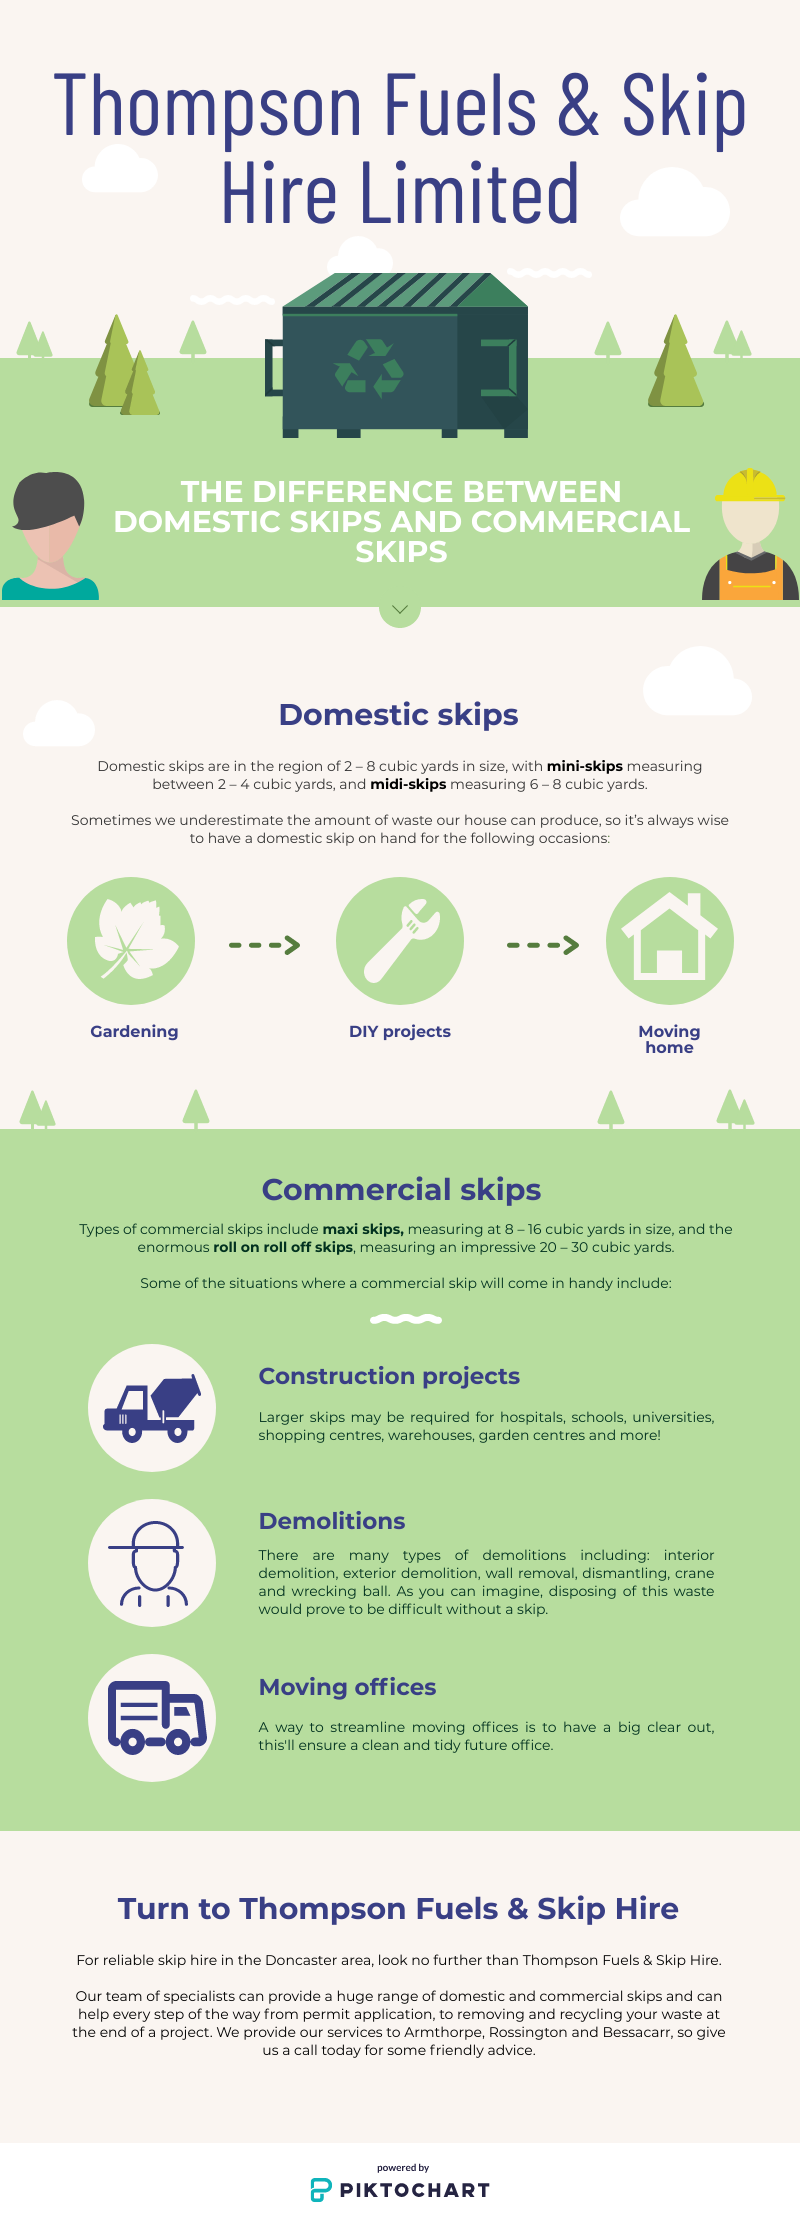 THE DIFFERENCE BETWEEN DOMESTIC SKIPS AND COMMERCIAL SKIPS